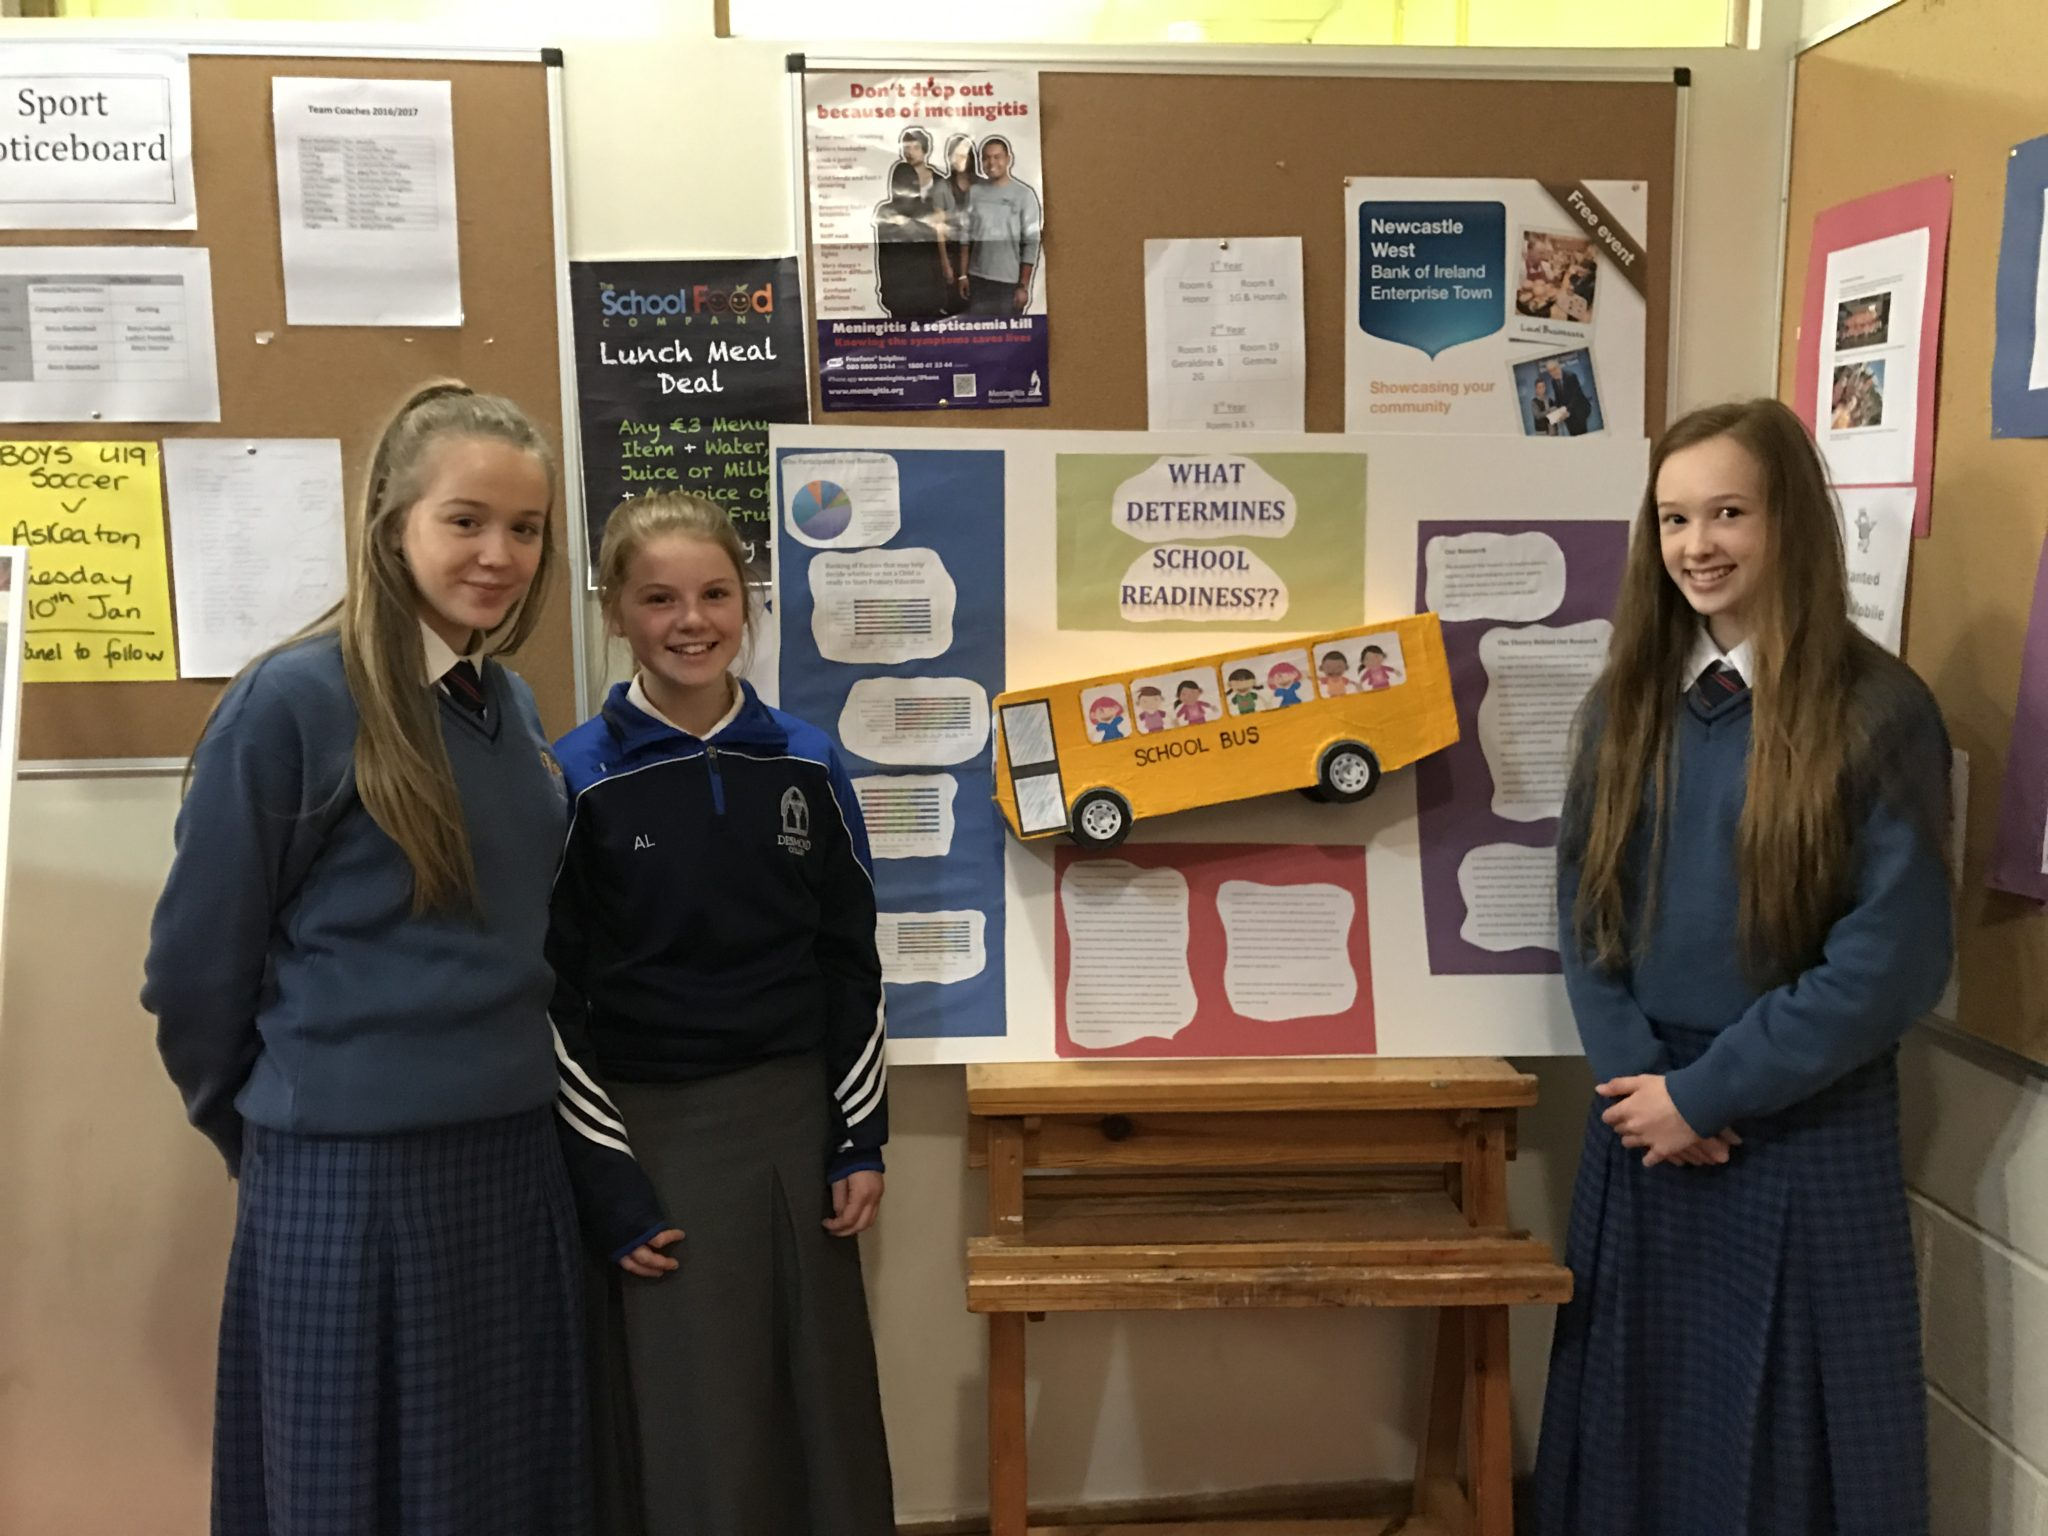 2017-01-11-what-determines-school-readiness-junior-social-and-behavioural-btyste2017